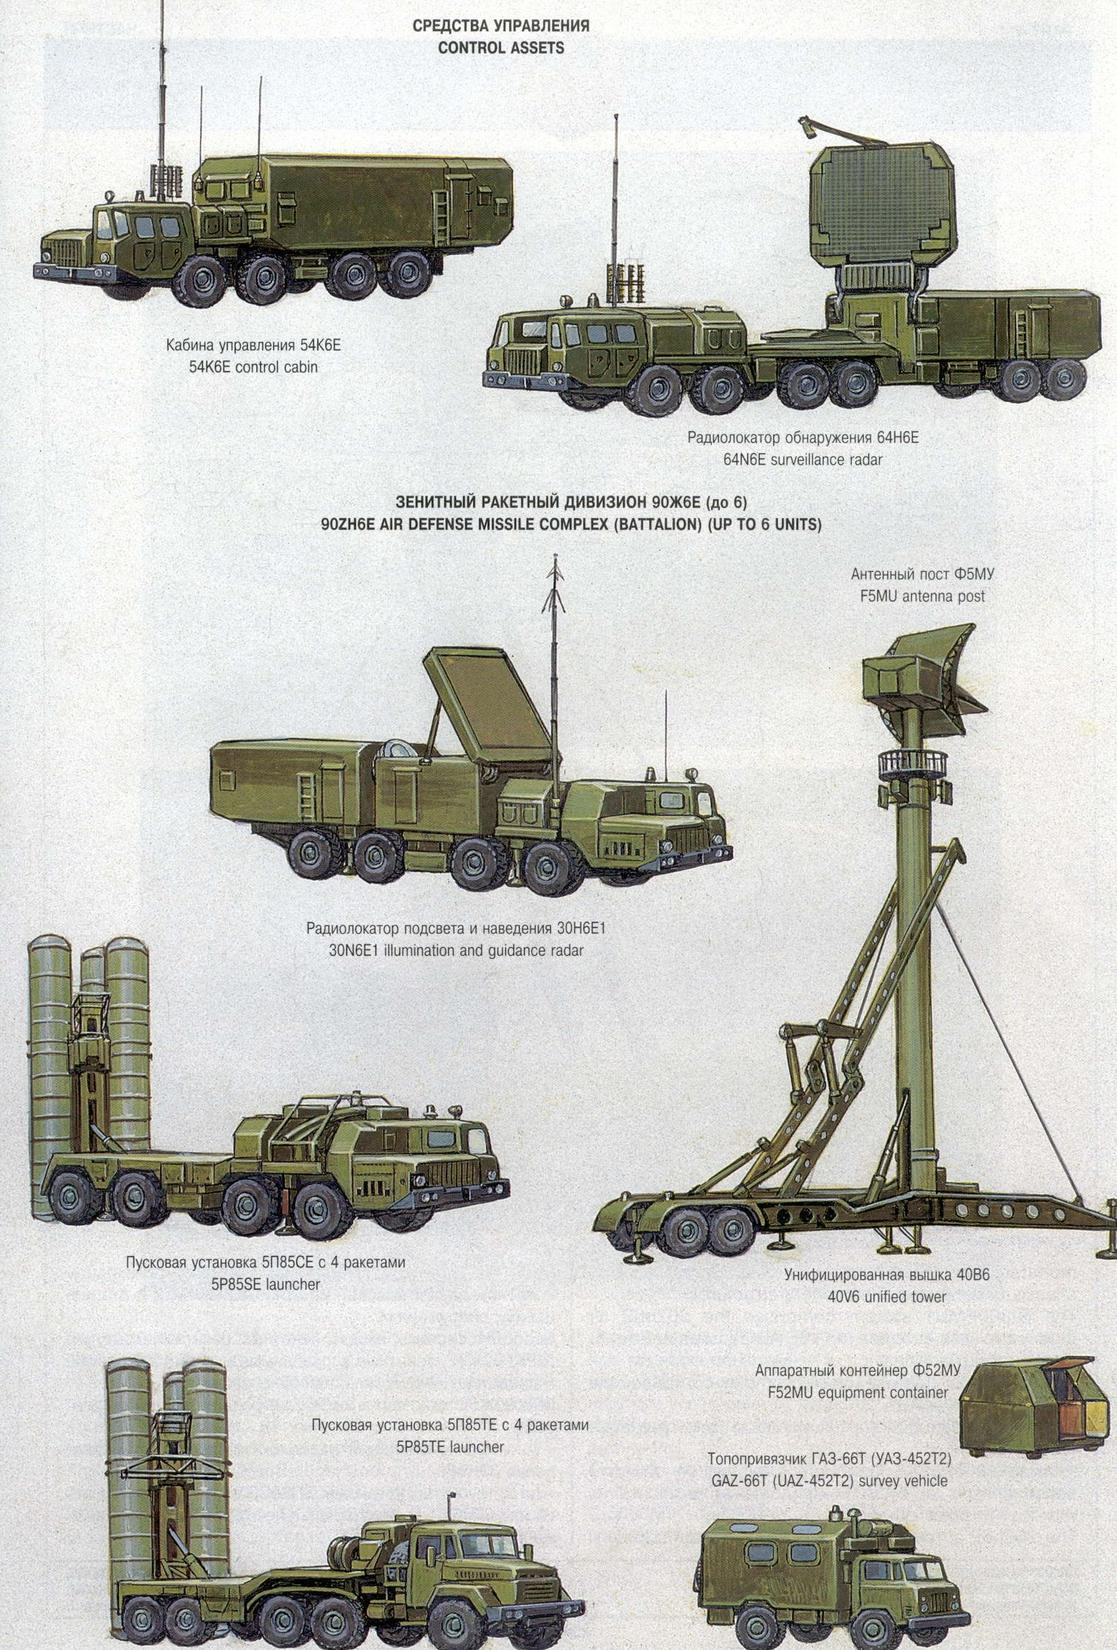 S 300 missile systems vs patriot - The S 300pmu 1 Volhov M6m Sa 20a Gargoyle Is Shipped From 1994 Into China Greece And Vietnam The S 300pmu 2 Favorit Sa 20b Gargoyle Is Shipped From